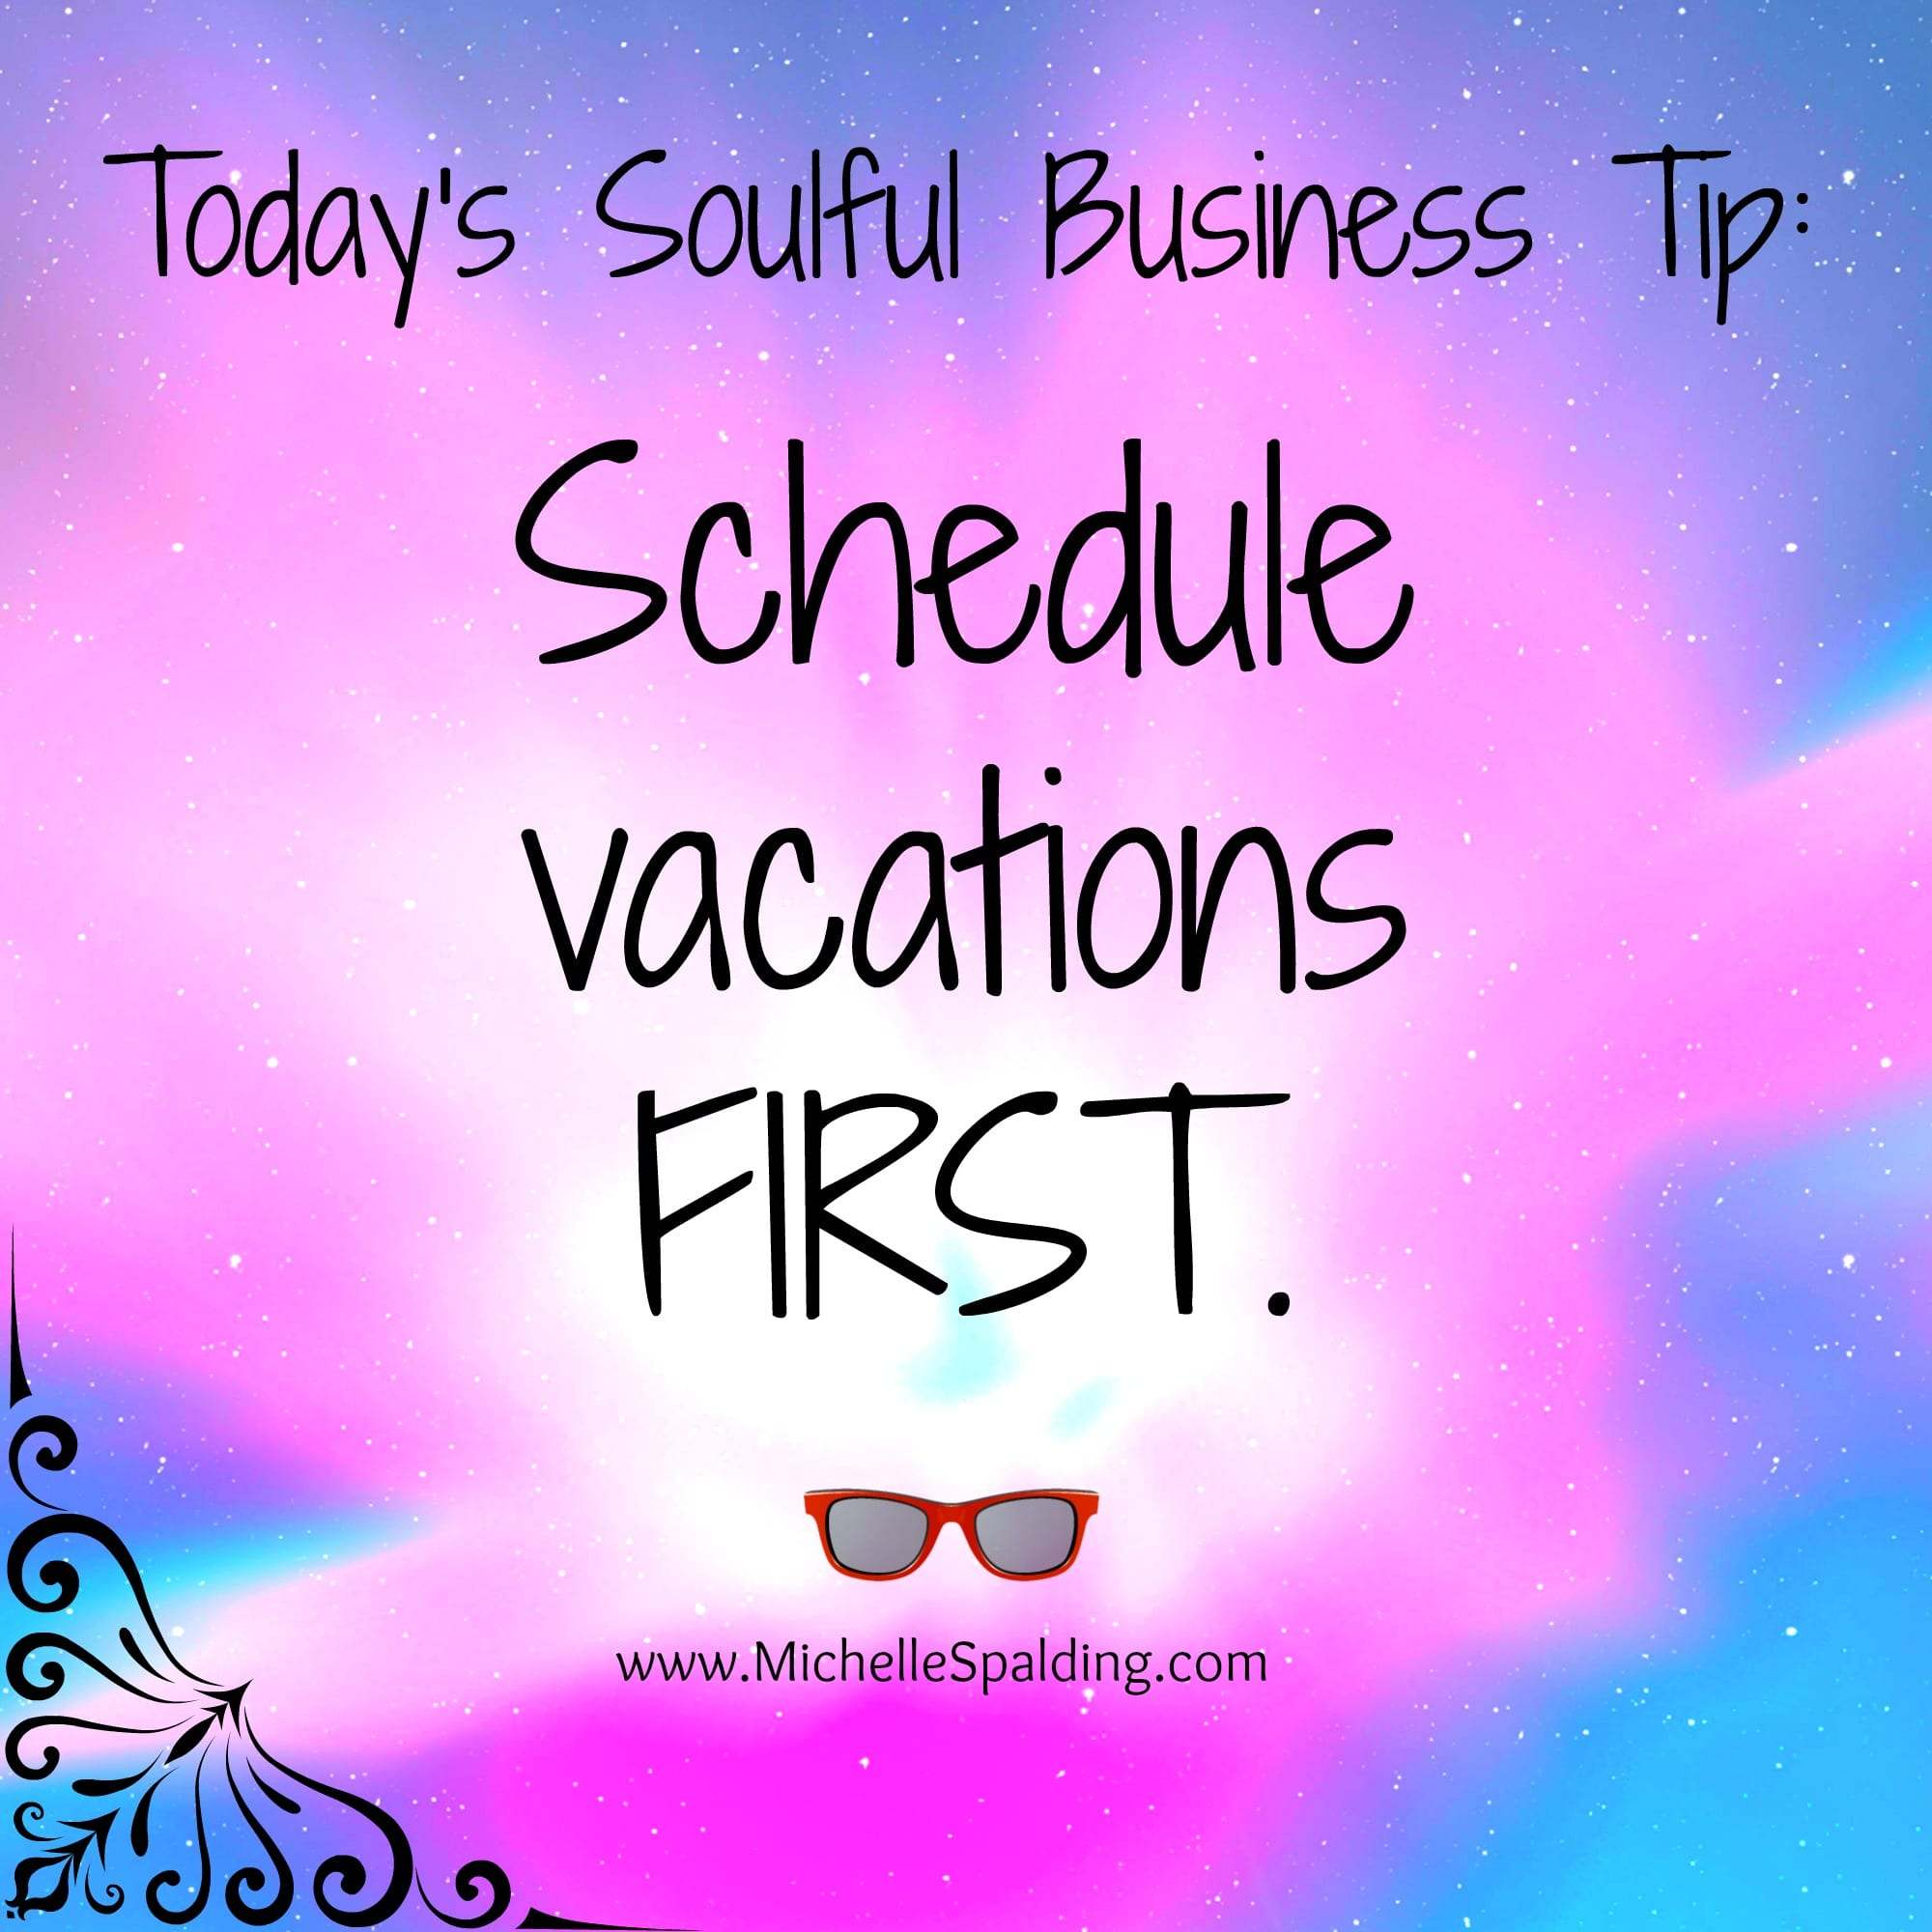 Schedule vacations FIRST